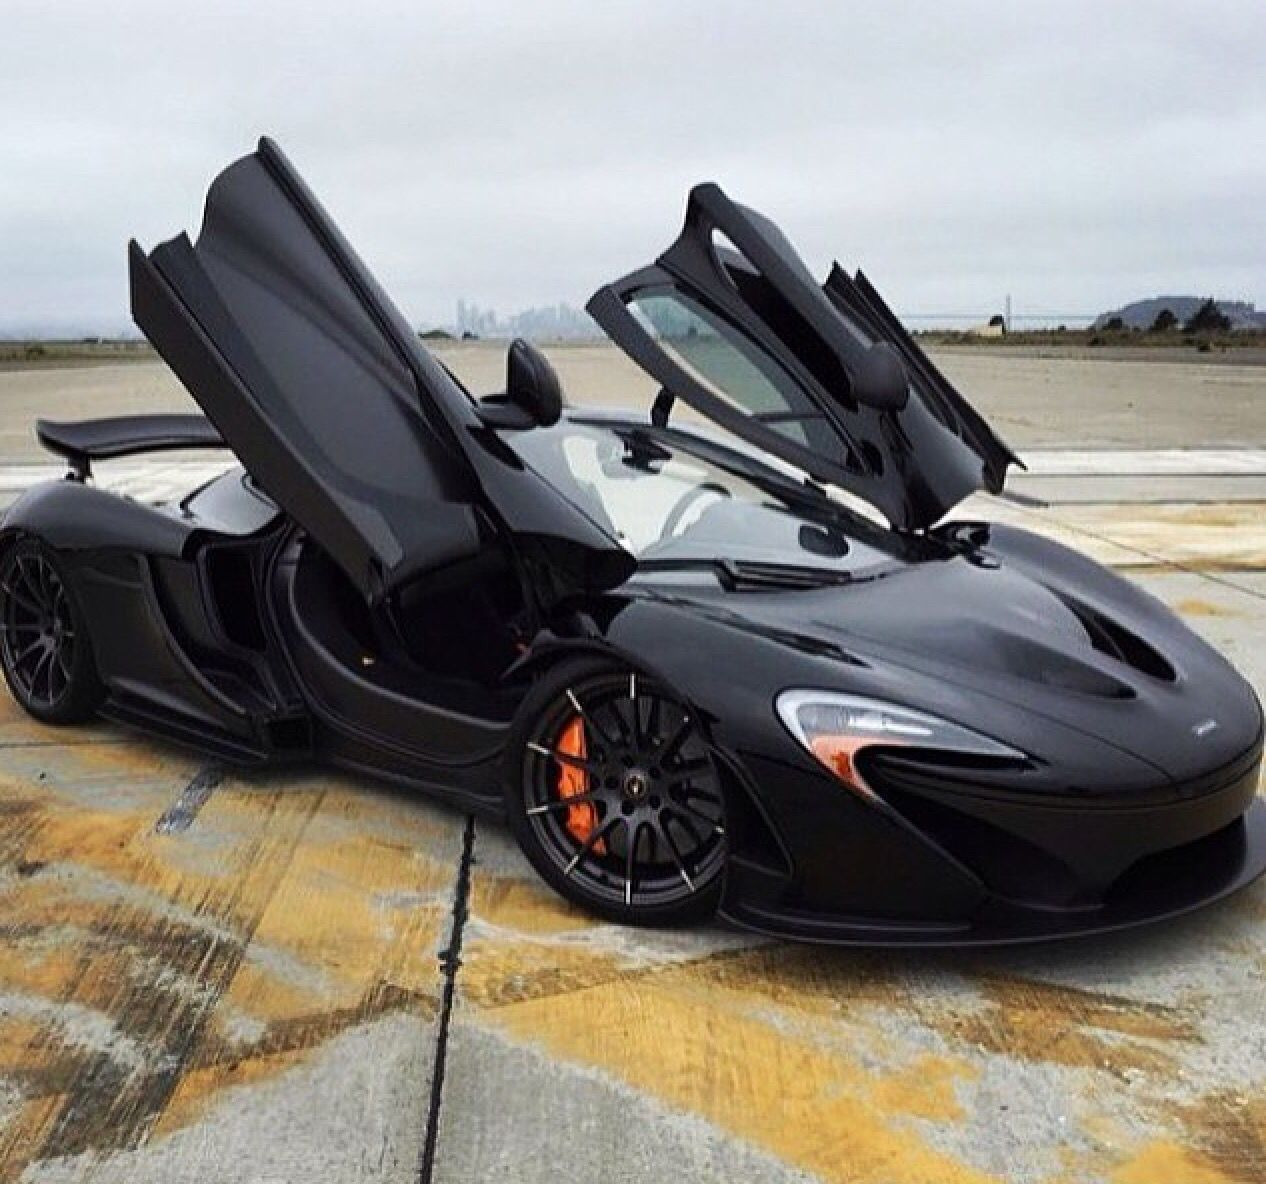 New Sports Cars, Luxury Cars, Mclaren Cars